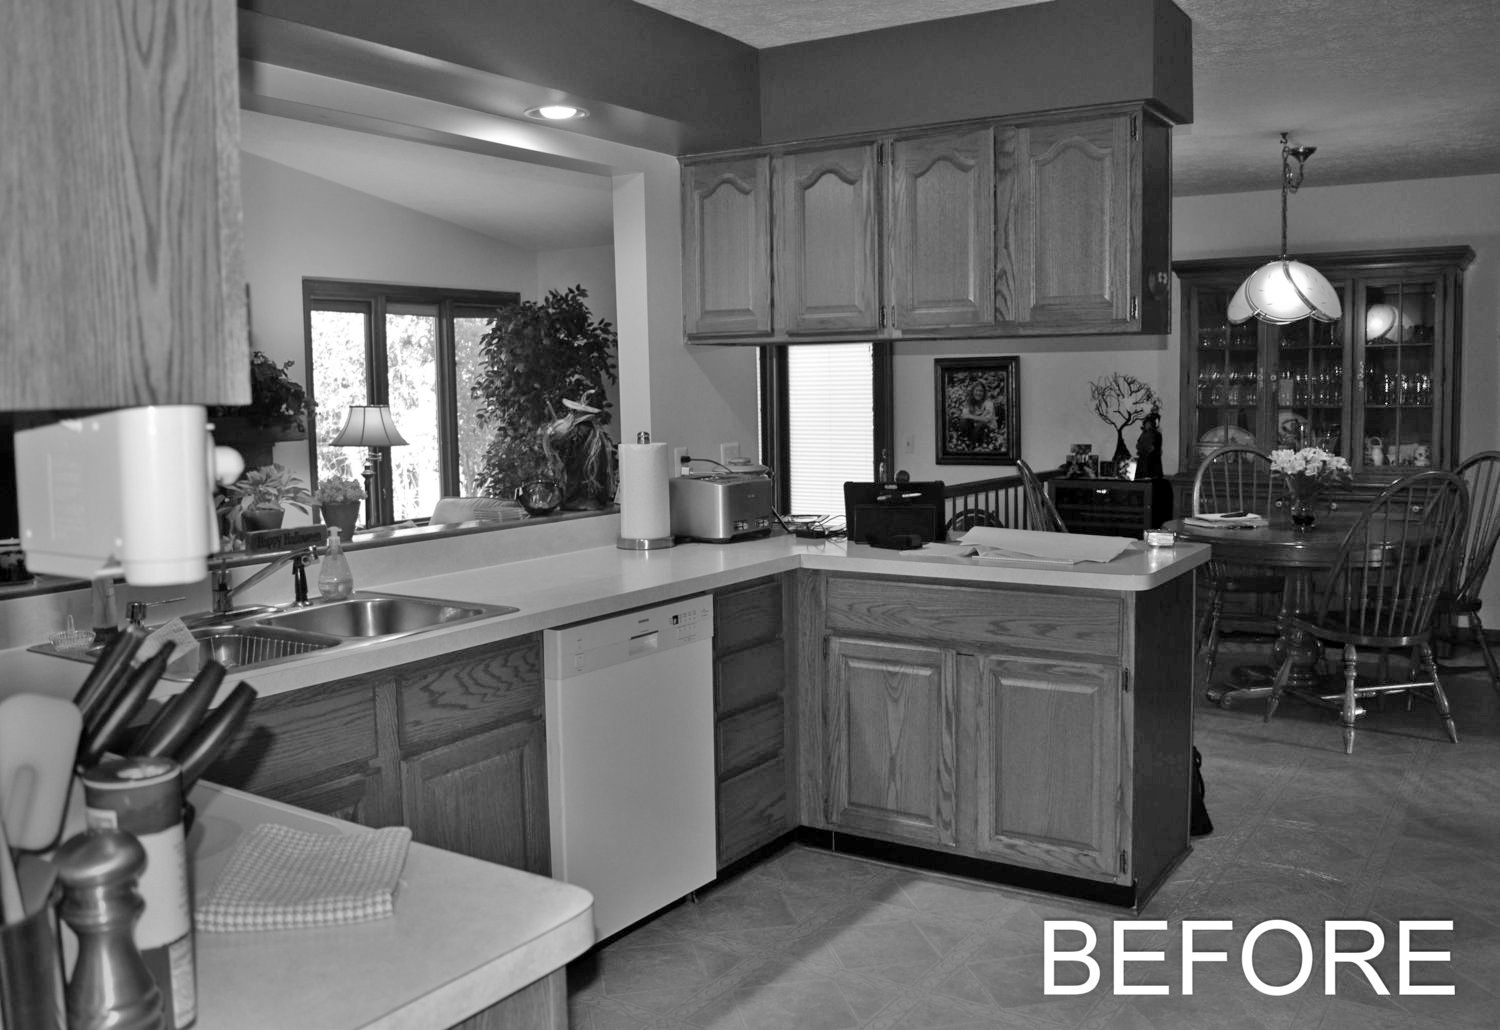 Kitchen before the renovation.